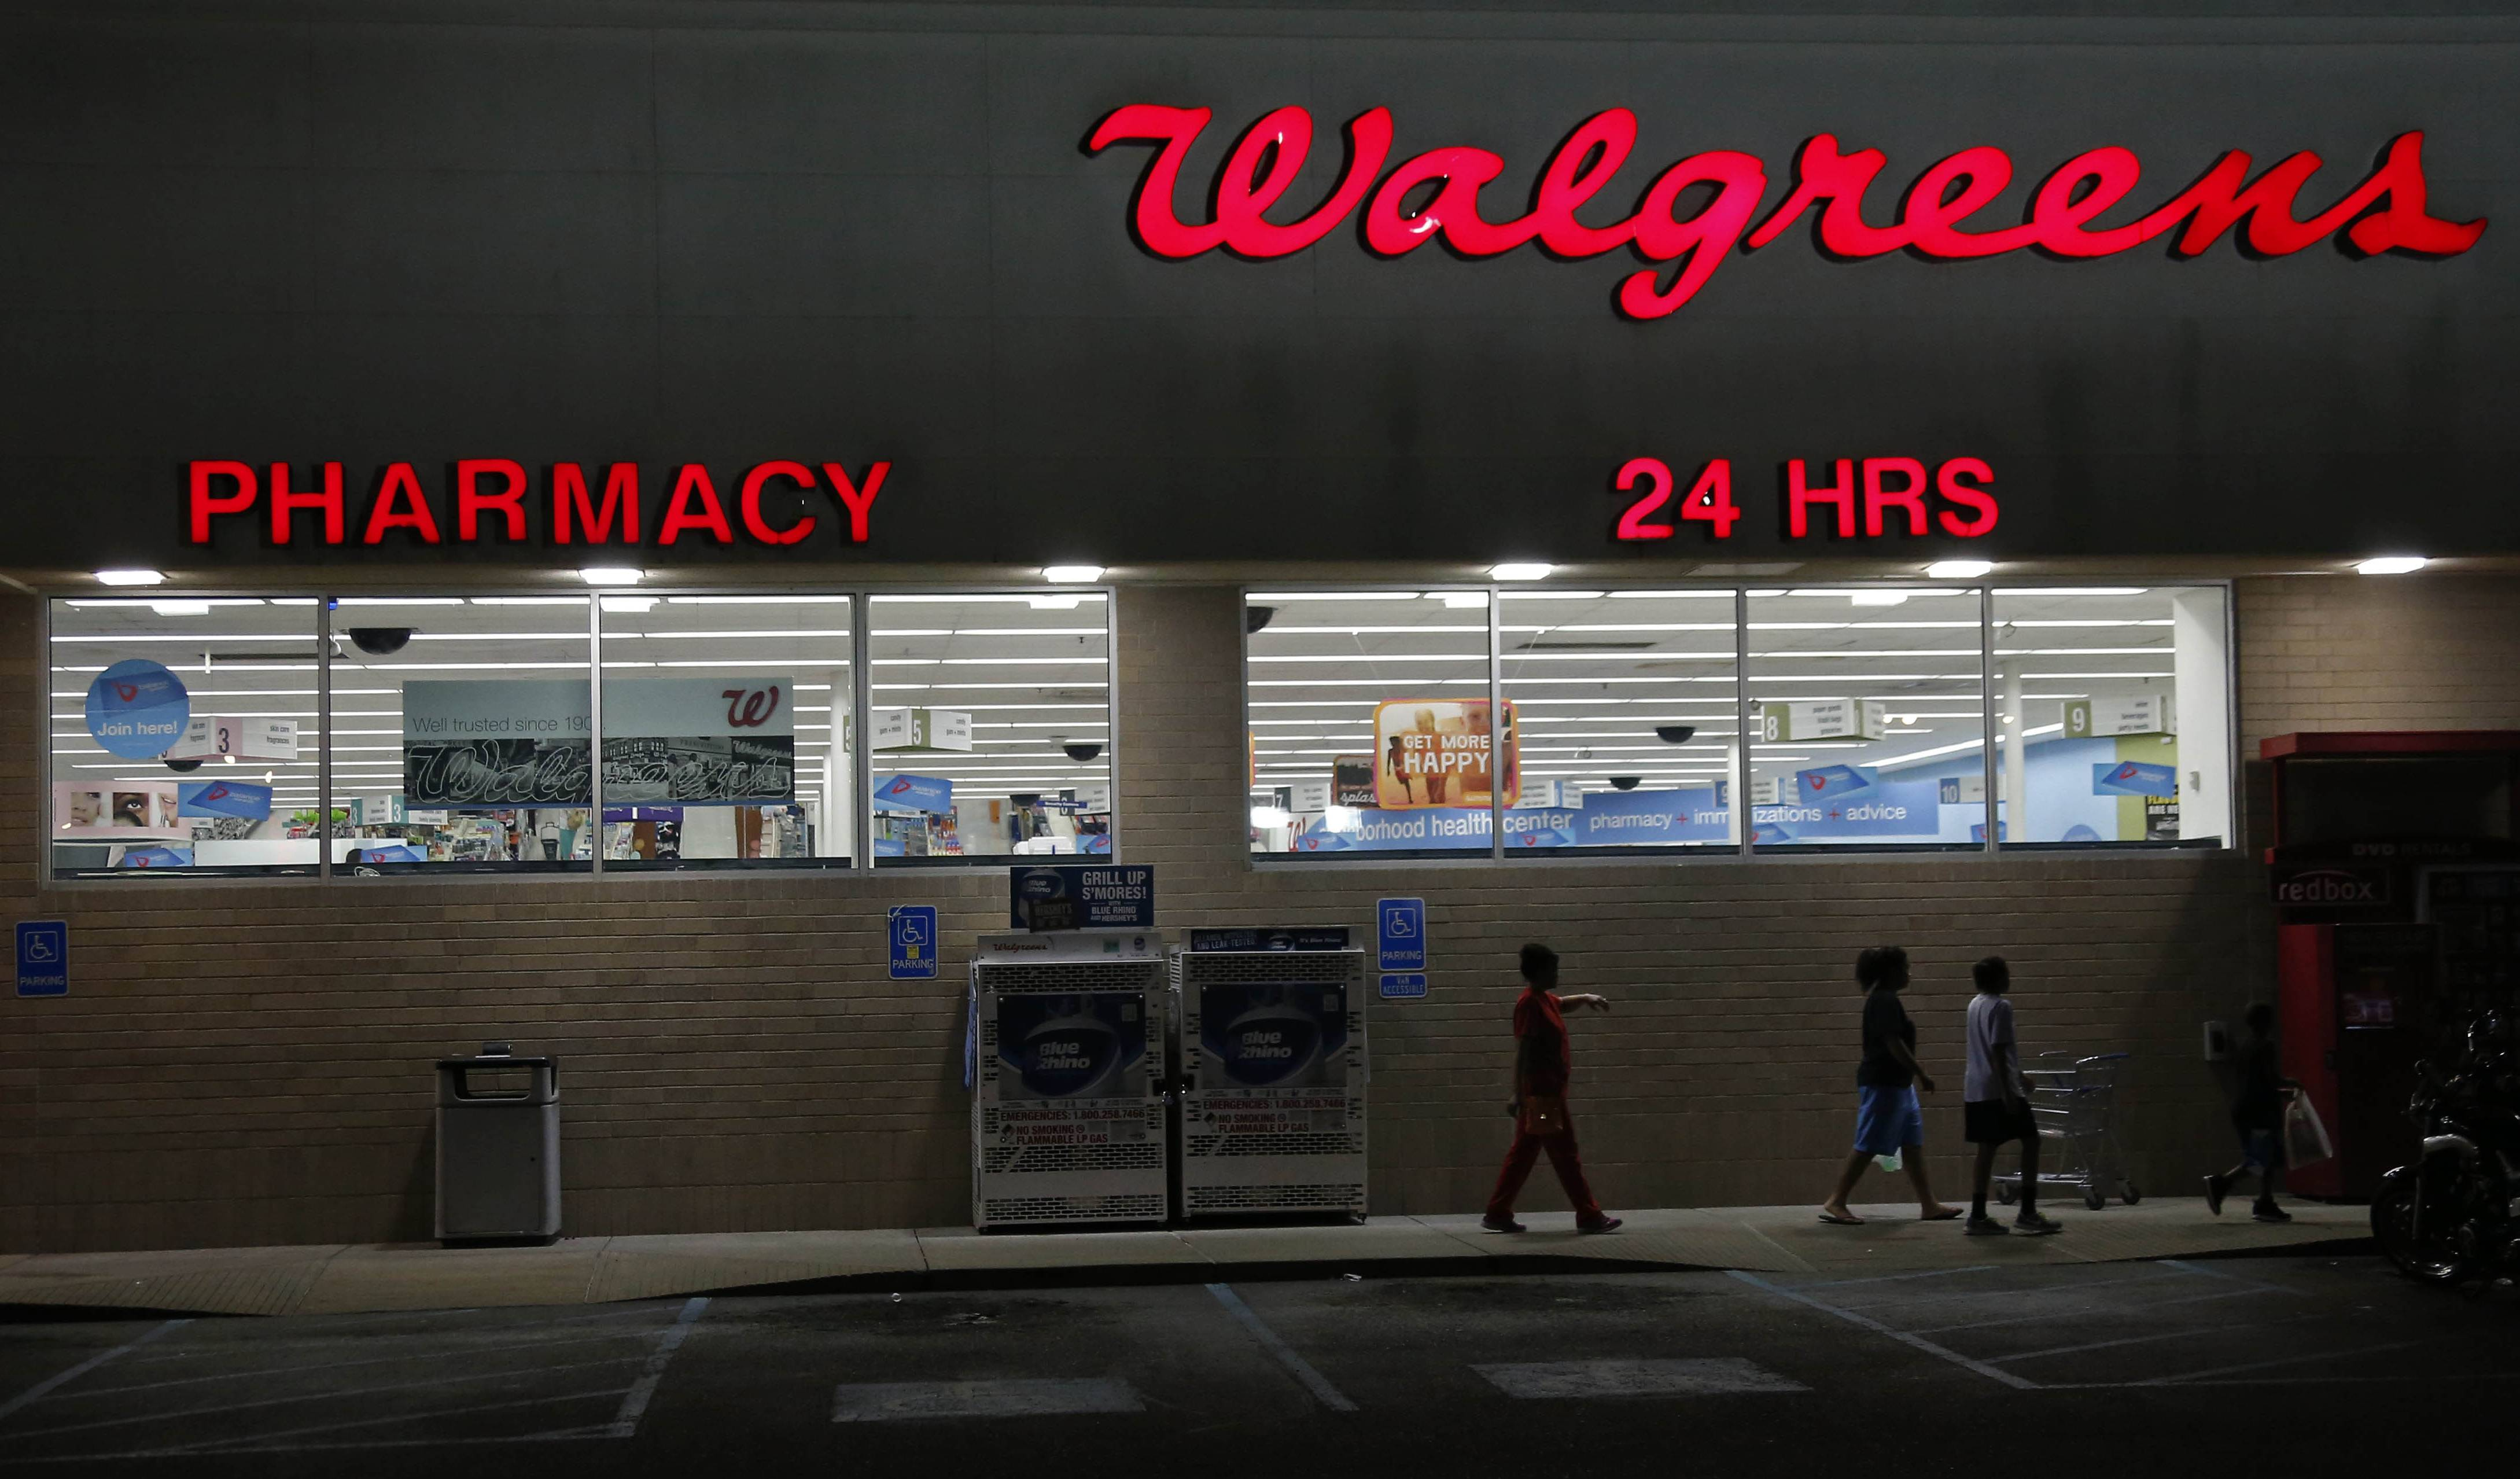 Deerfield-based Walgreens will team up with pharmacy benefit manager Prime Therapeutics to form a new retail pharmacy network.